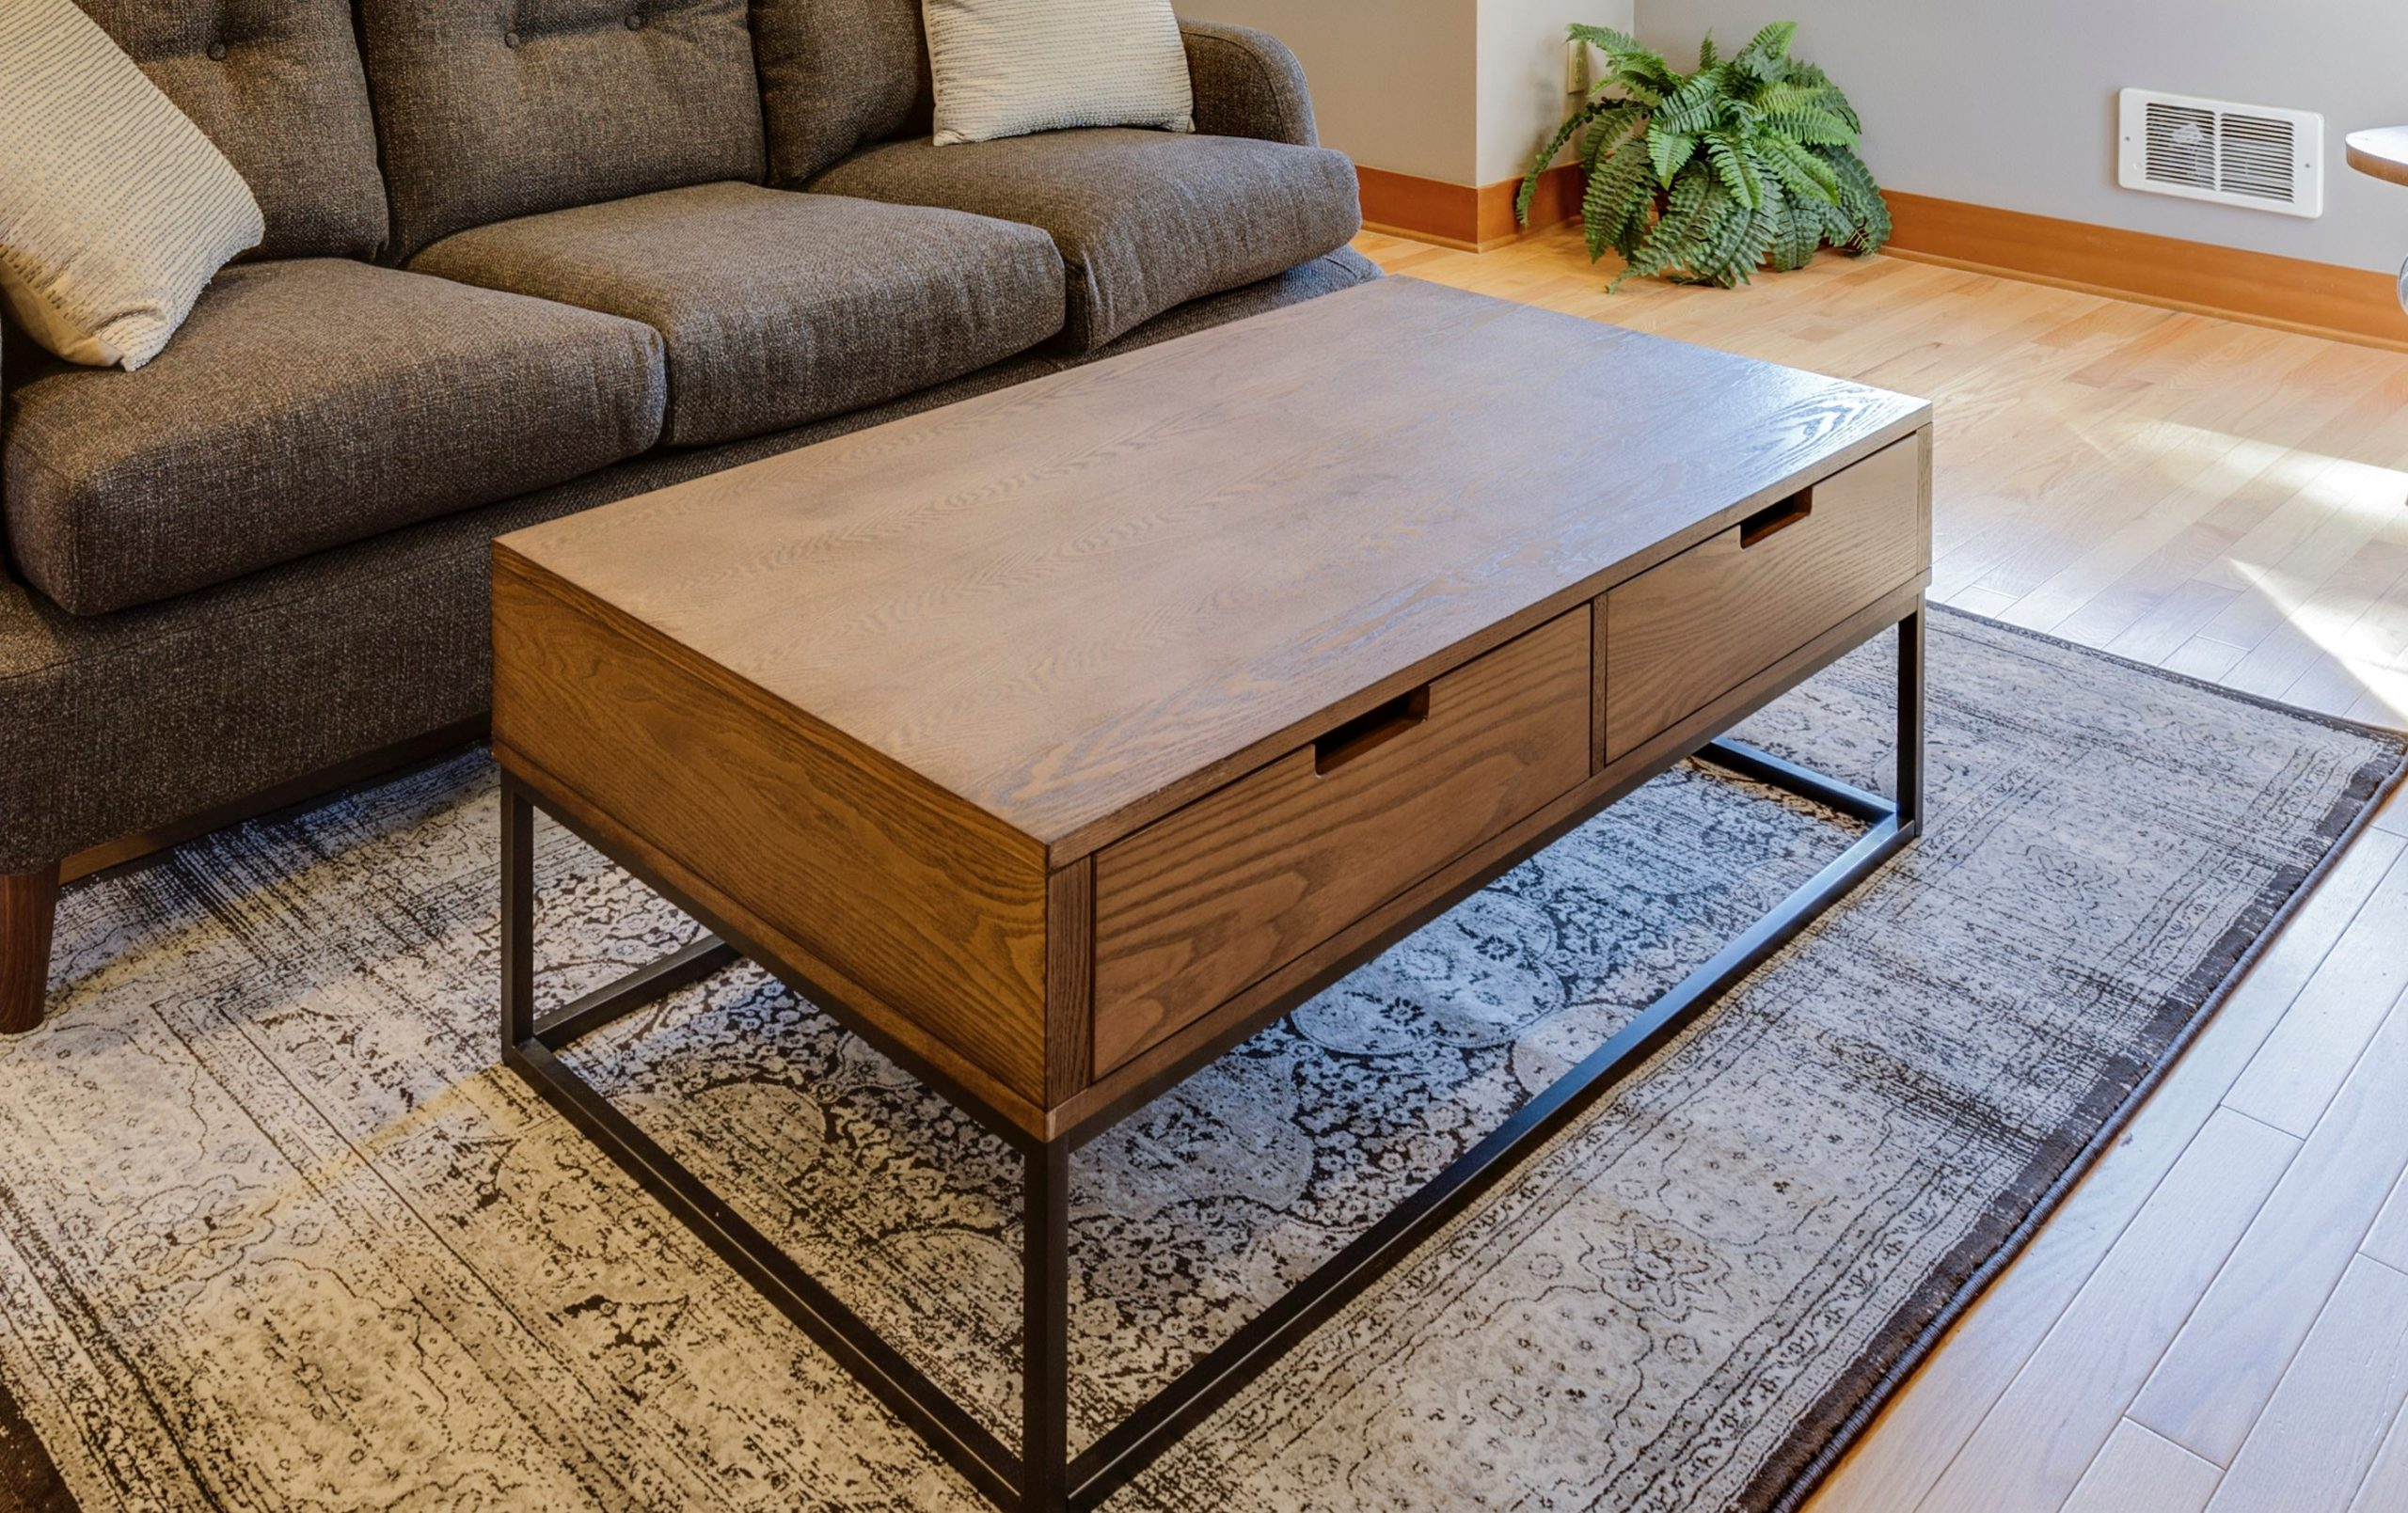 How to Make Industrial Style Furniture You'll Love